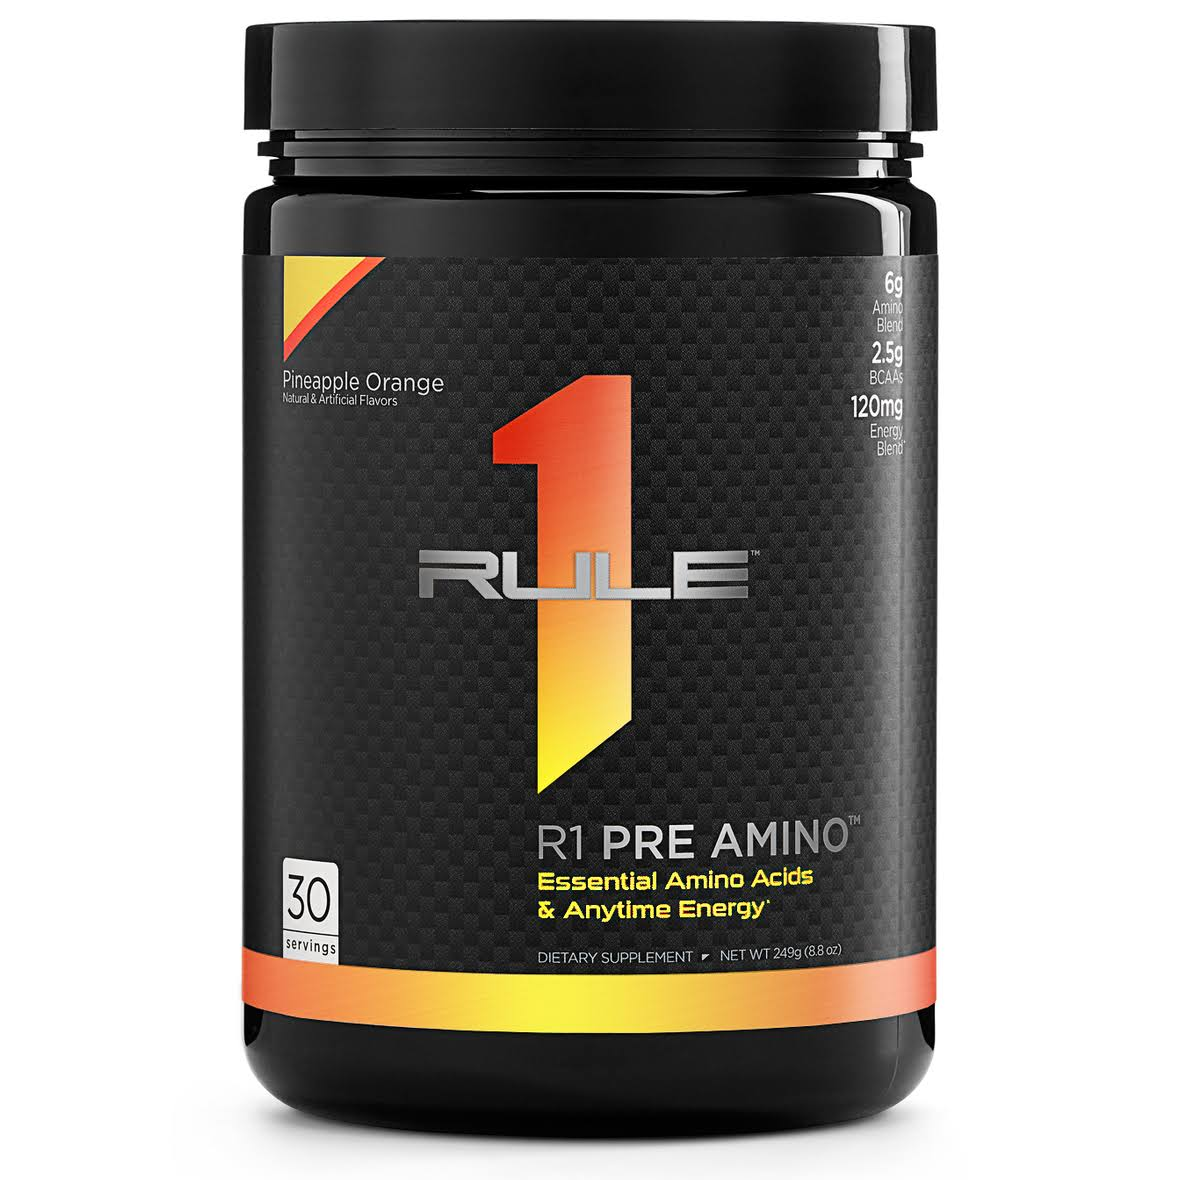 Rule1 R1 Pre Amino (30 Servings) Pineapple Orange